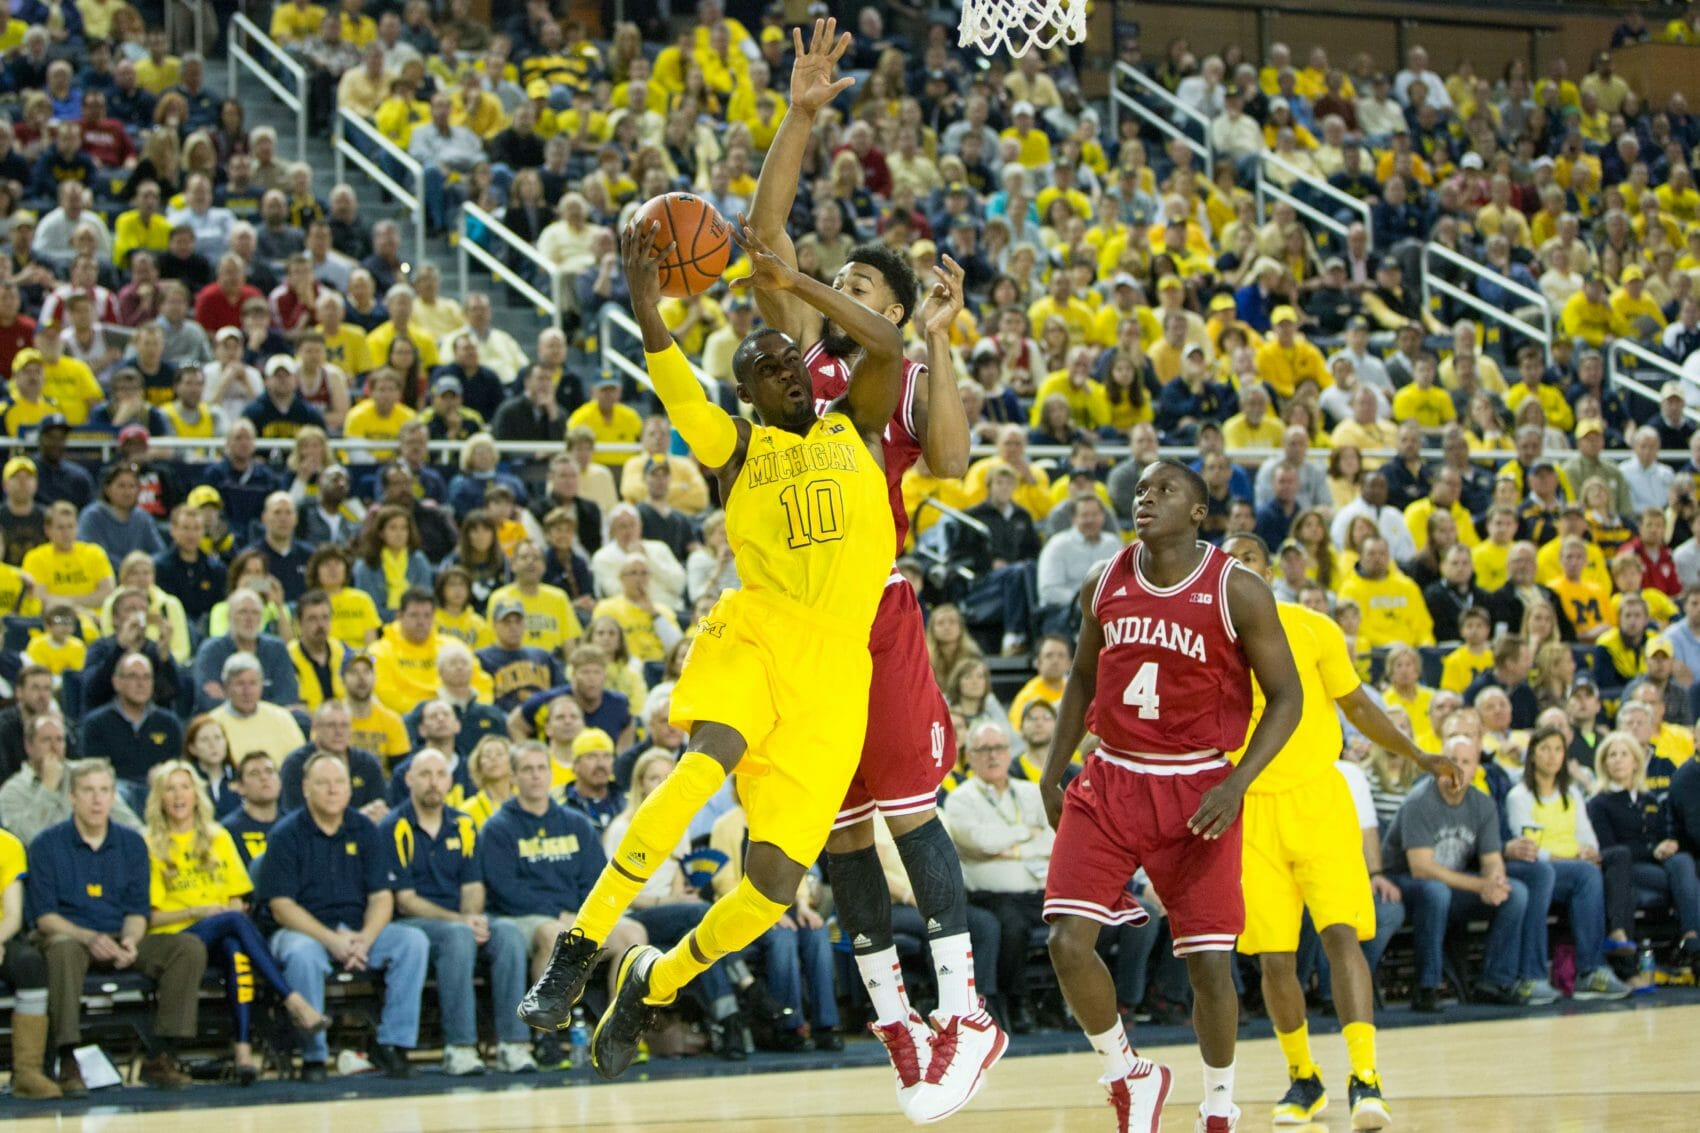 Indiana 72, Michigan 71-3